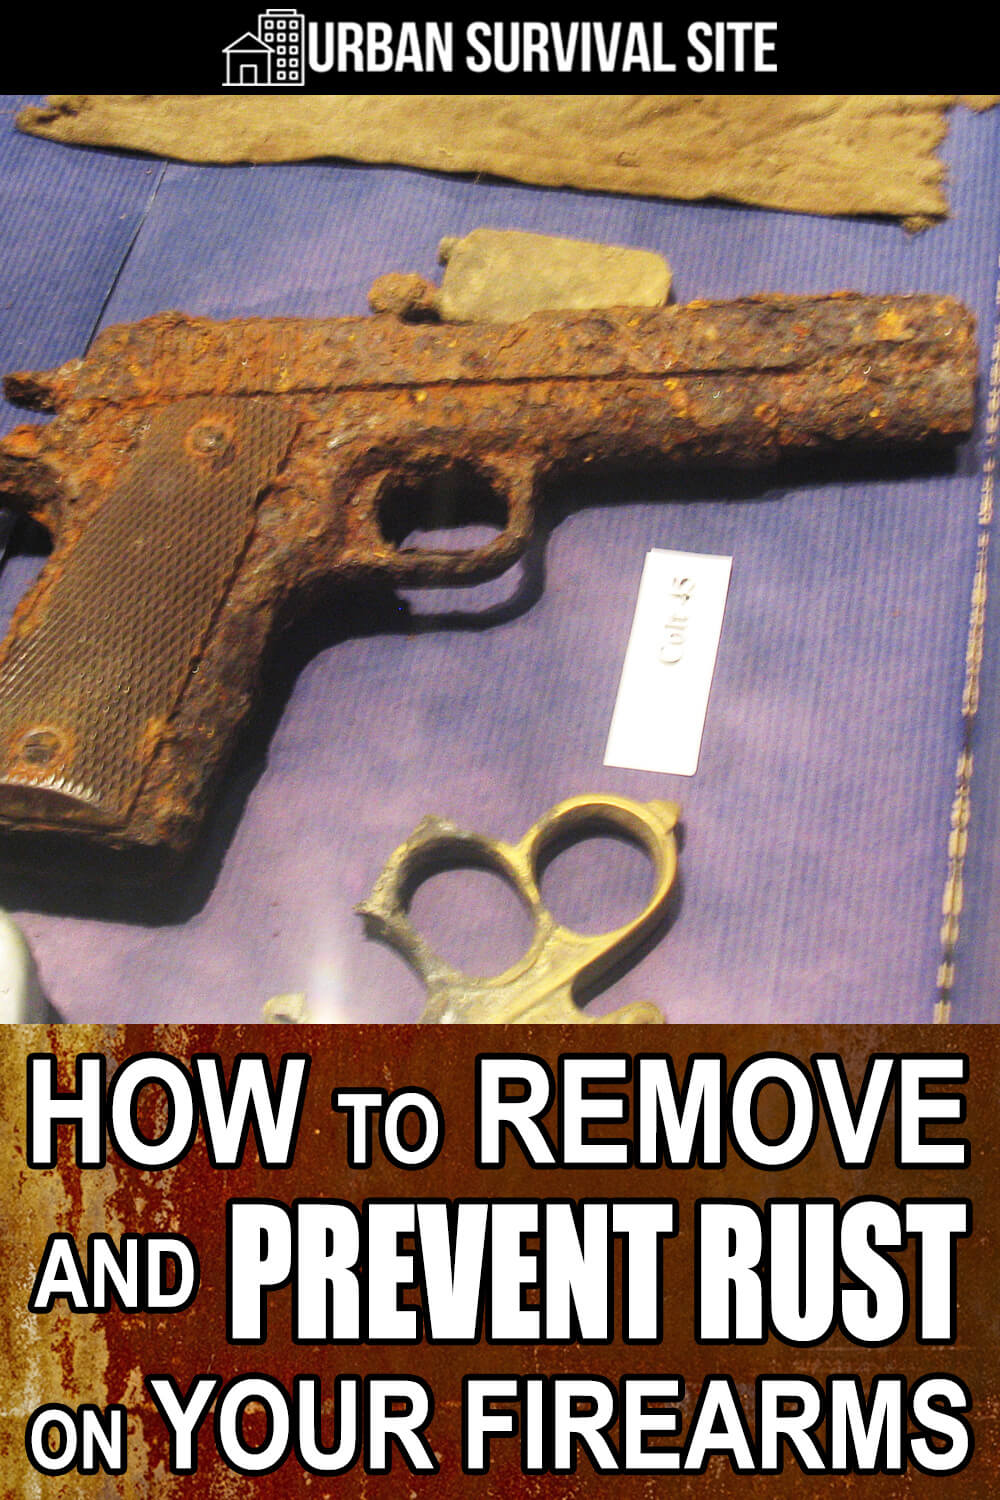 How to Remove and Prevent Rust on Your Firearms